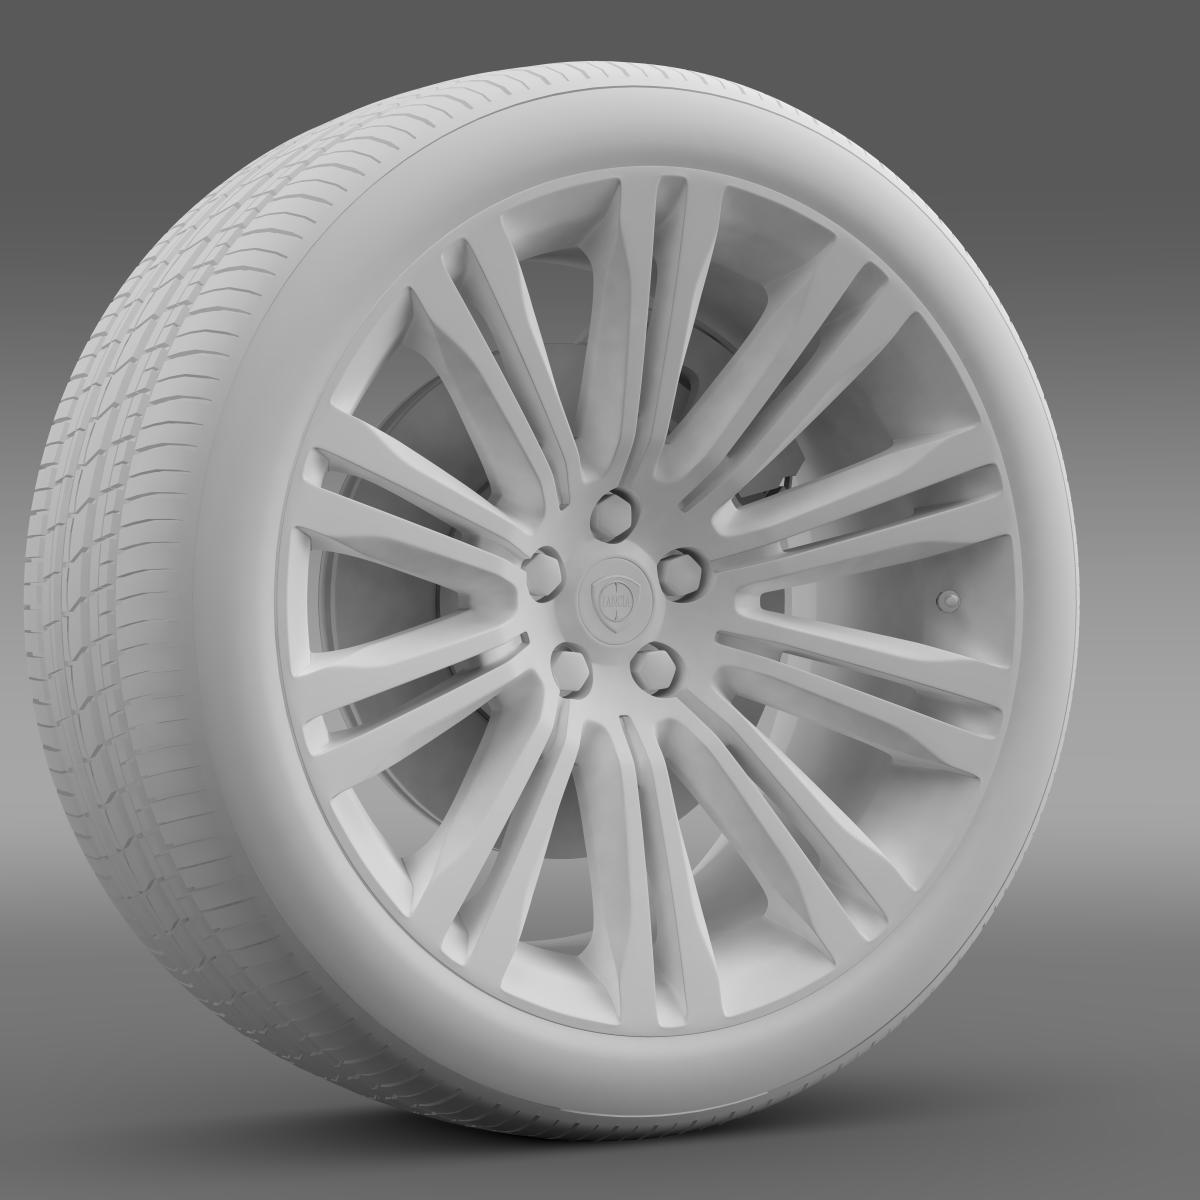 lancia thema 2014 wheel 3d model 3ds max fbx c4d lwo ma mb hrc xsi obj 210736